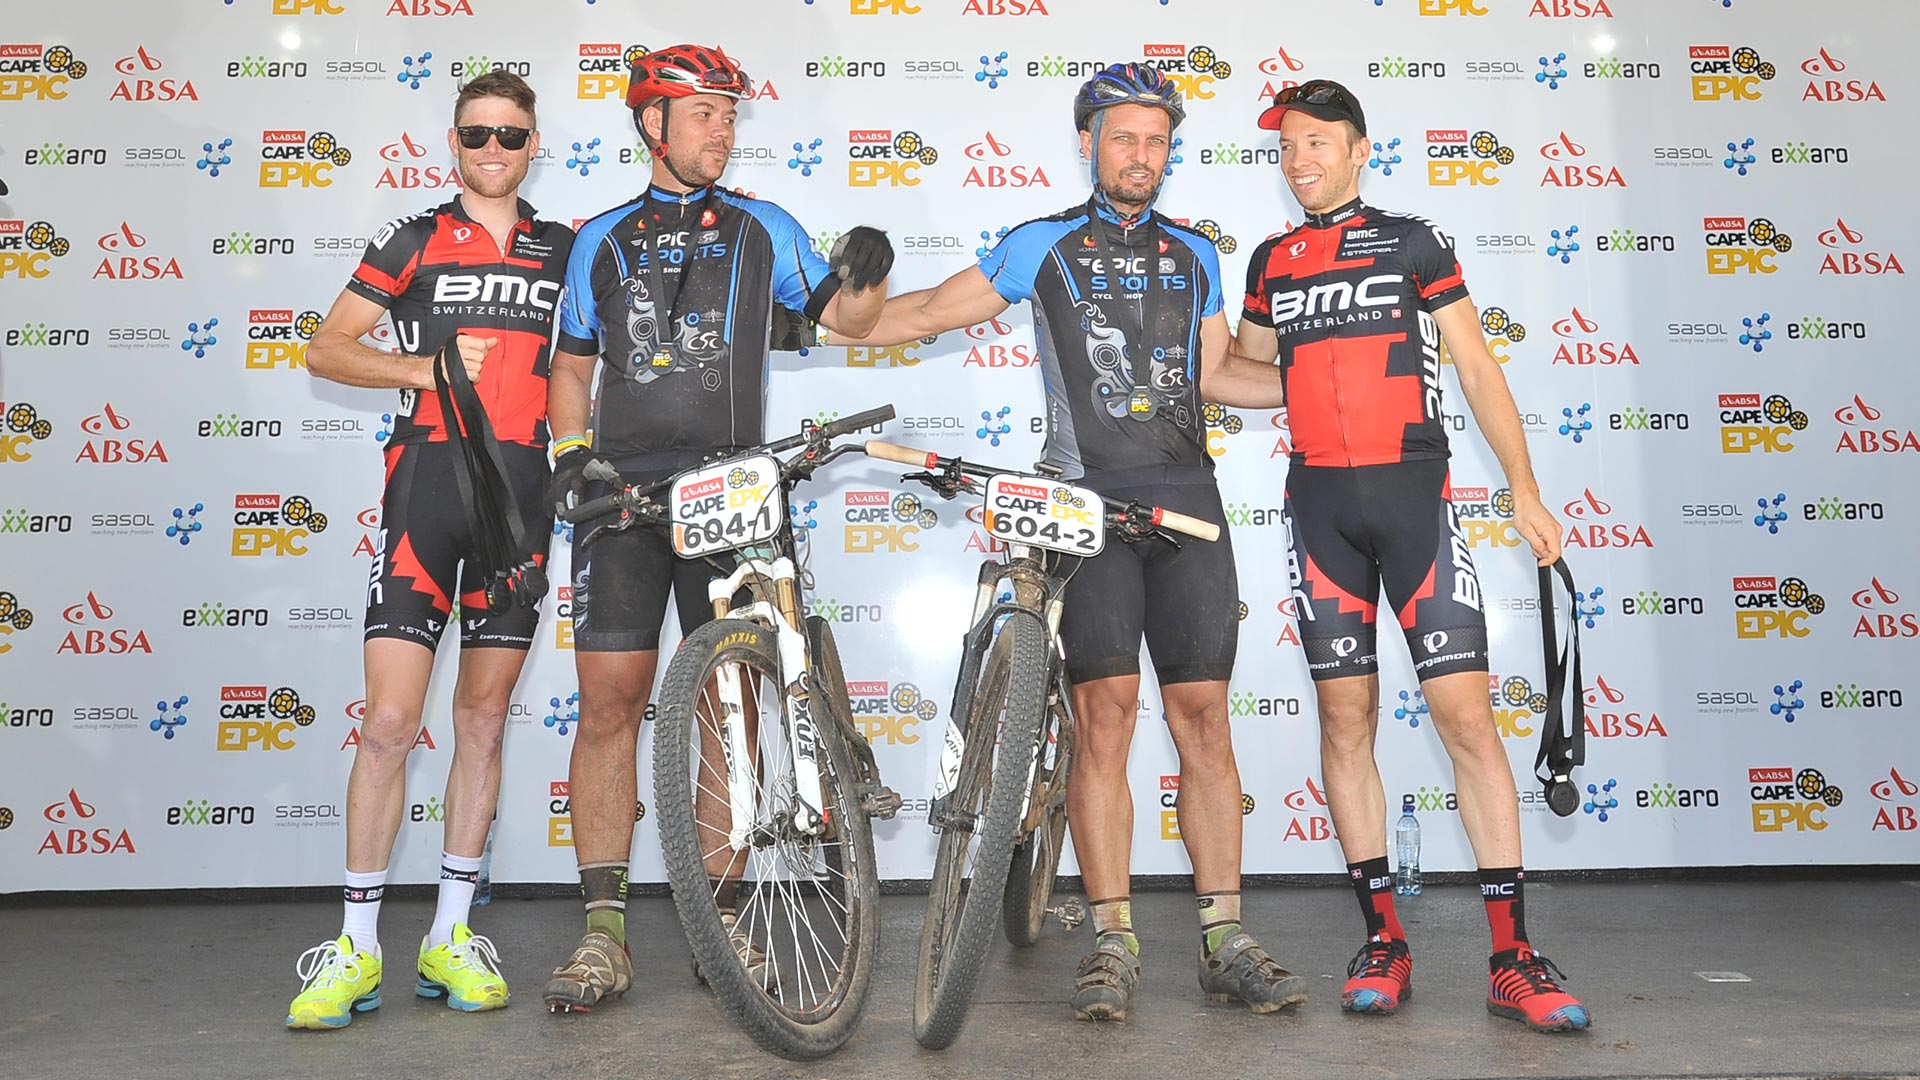 Coen van Tonder and another mountain biker at the award ceremony after the Cape Epic race